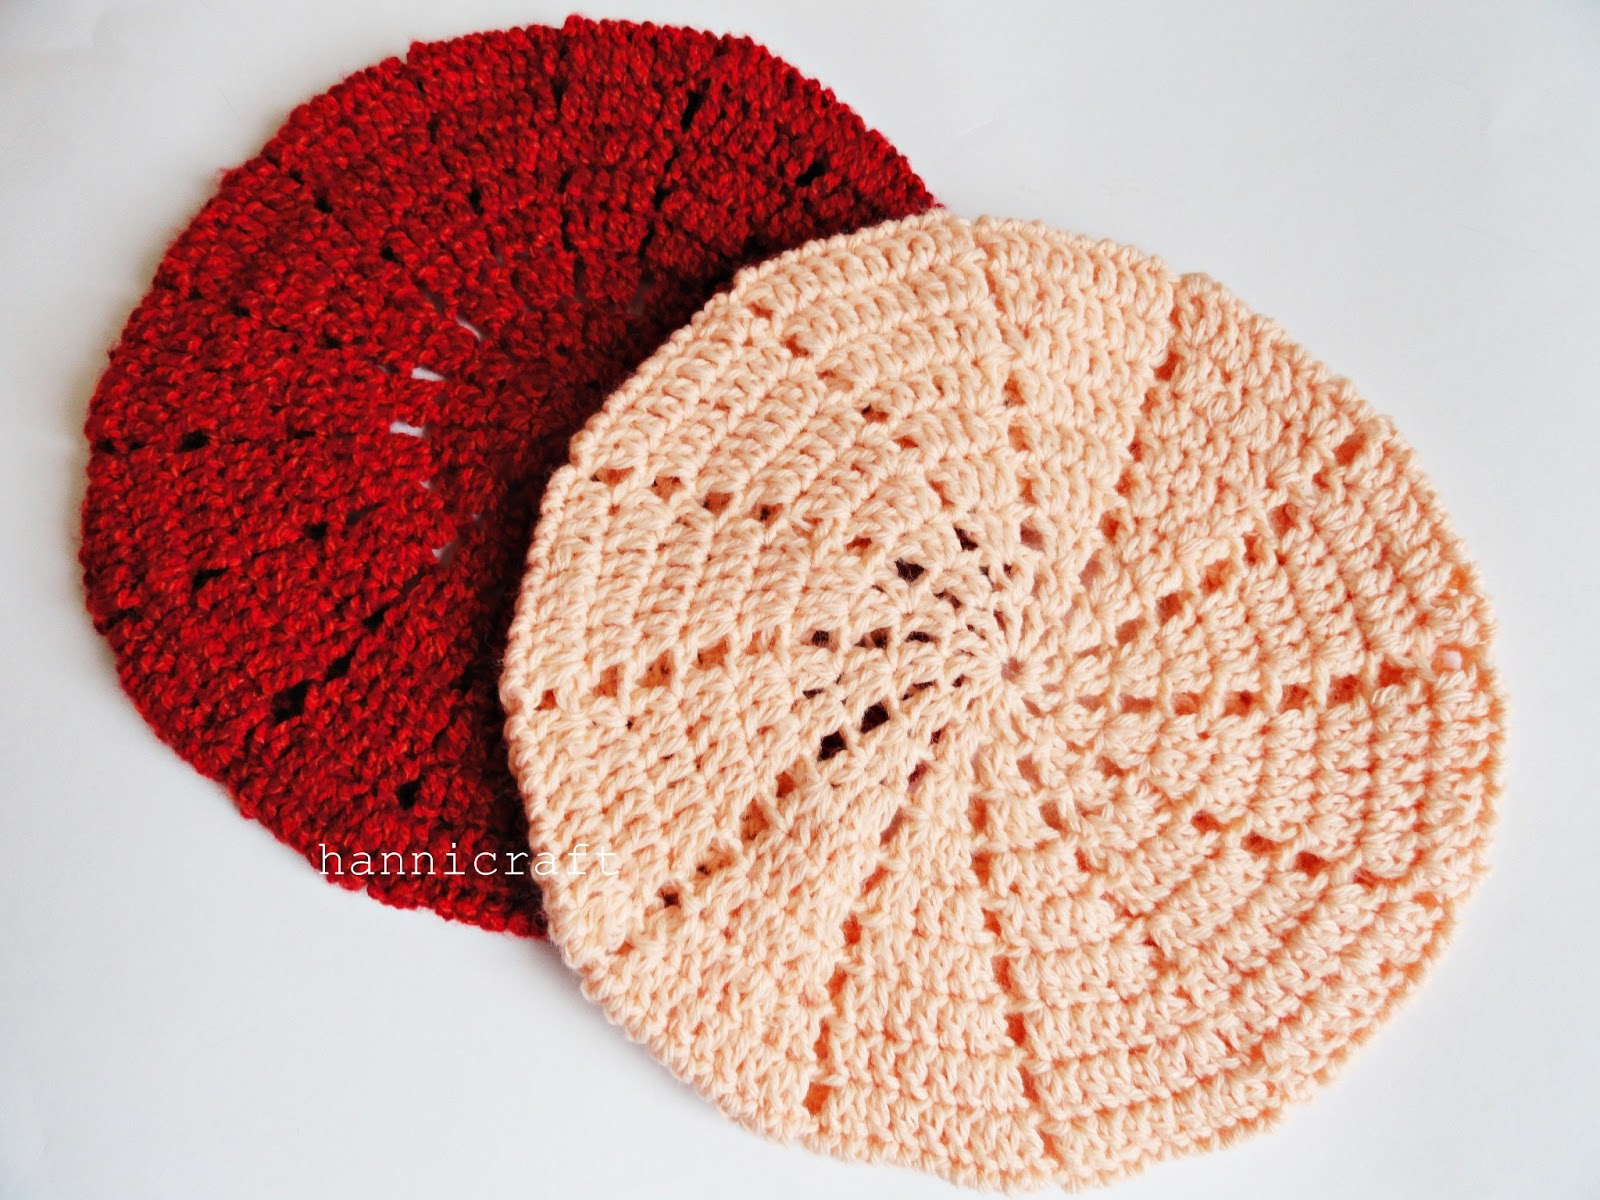 Beret Knitting Pattern Easy : Simple beret crochet pattern